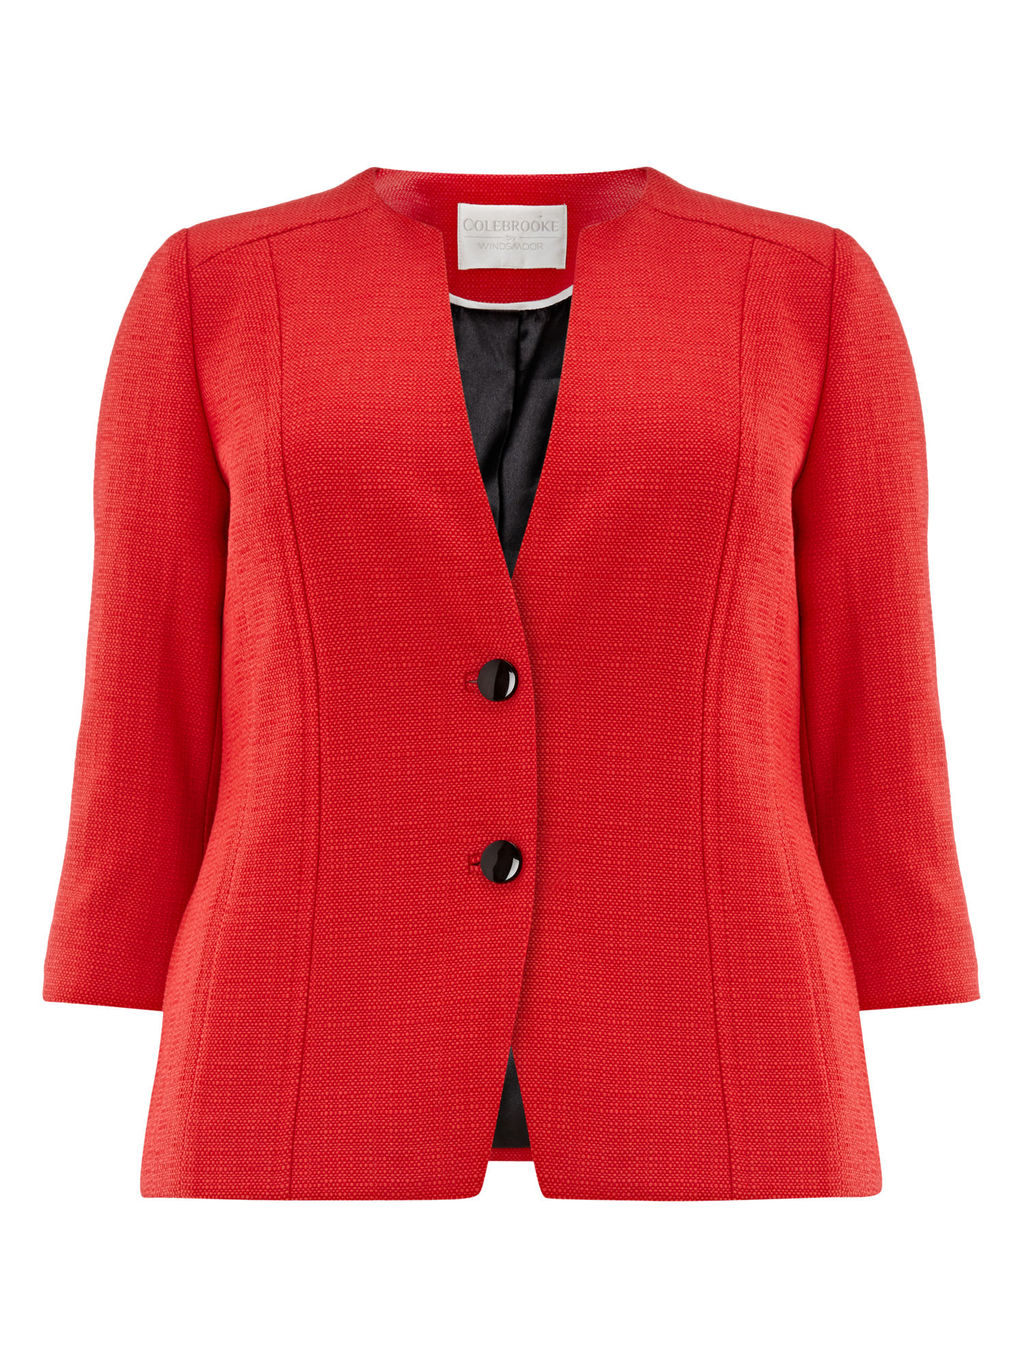 Textured Jacket, Red - pattern: plain; style: single breasted blazer; collar: round collar/collarless; predominant colour: true red; length: standard; fit: tailored/fitted; fibres: cotton - mix; occasions: occasion; sleeve length: 3/4 length; sleeve style: standard; collar break: medium; pattern type: fabric; texture group: woven light midweight; season: a/w 2015; wardrobe: event